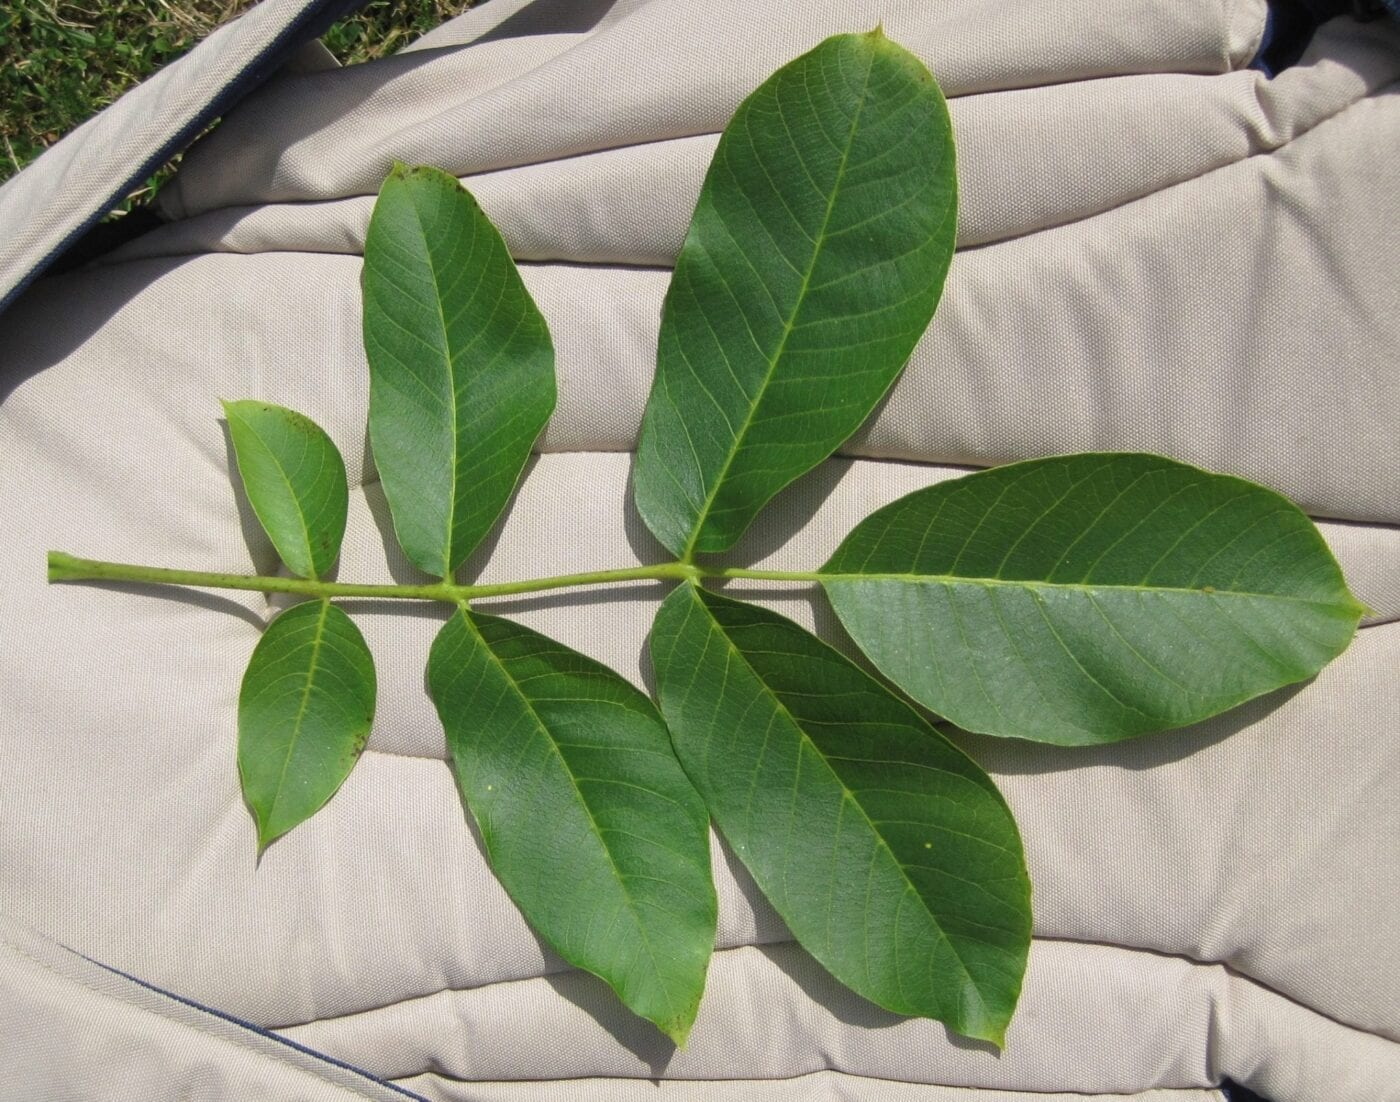 Common Walnut leaf